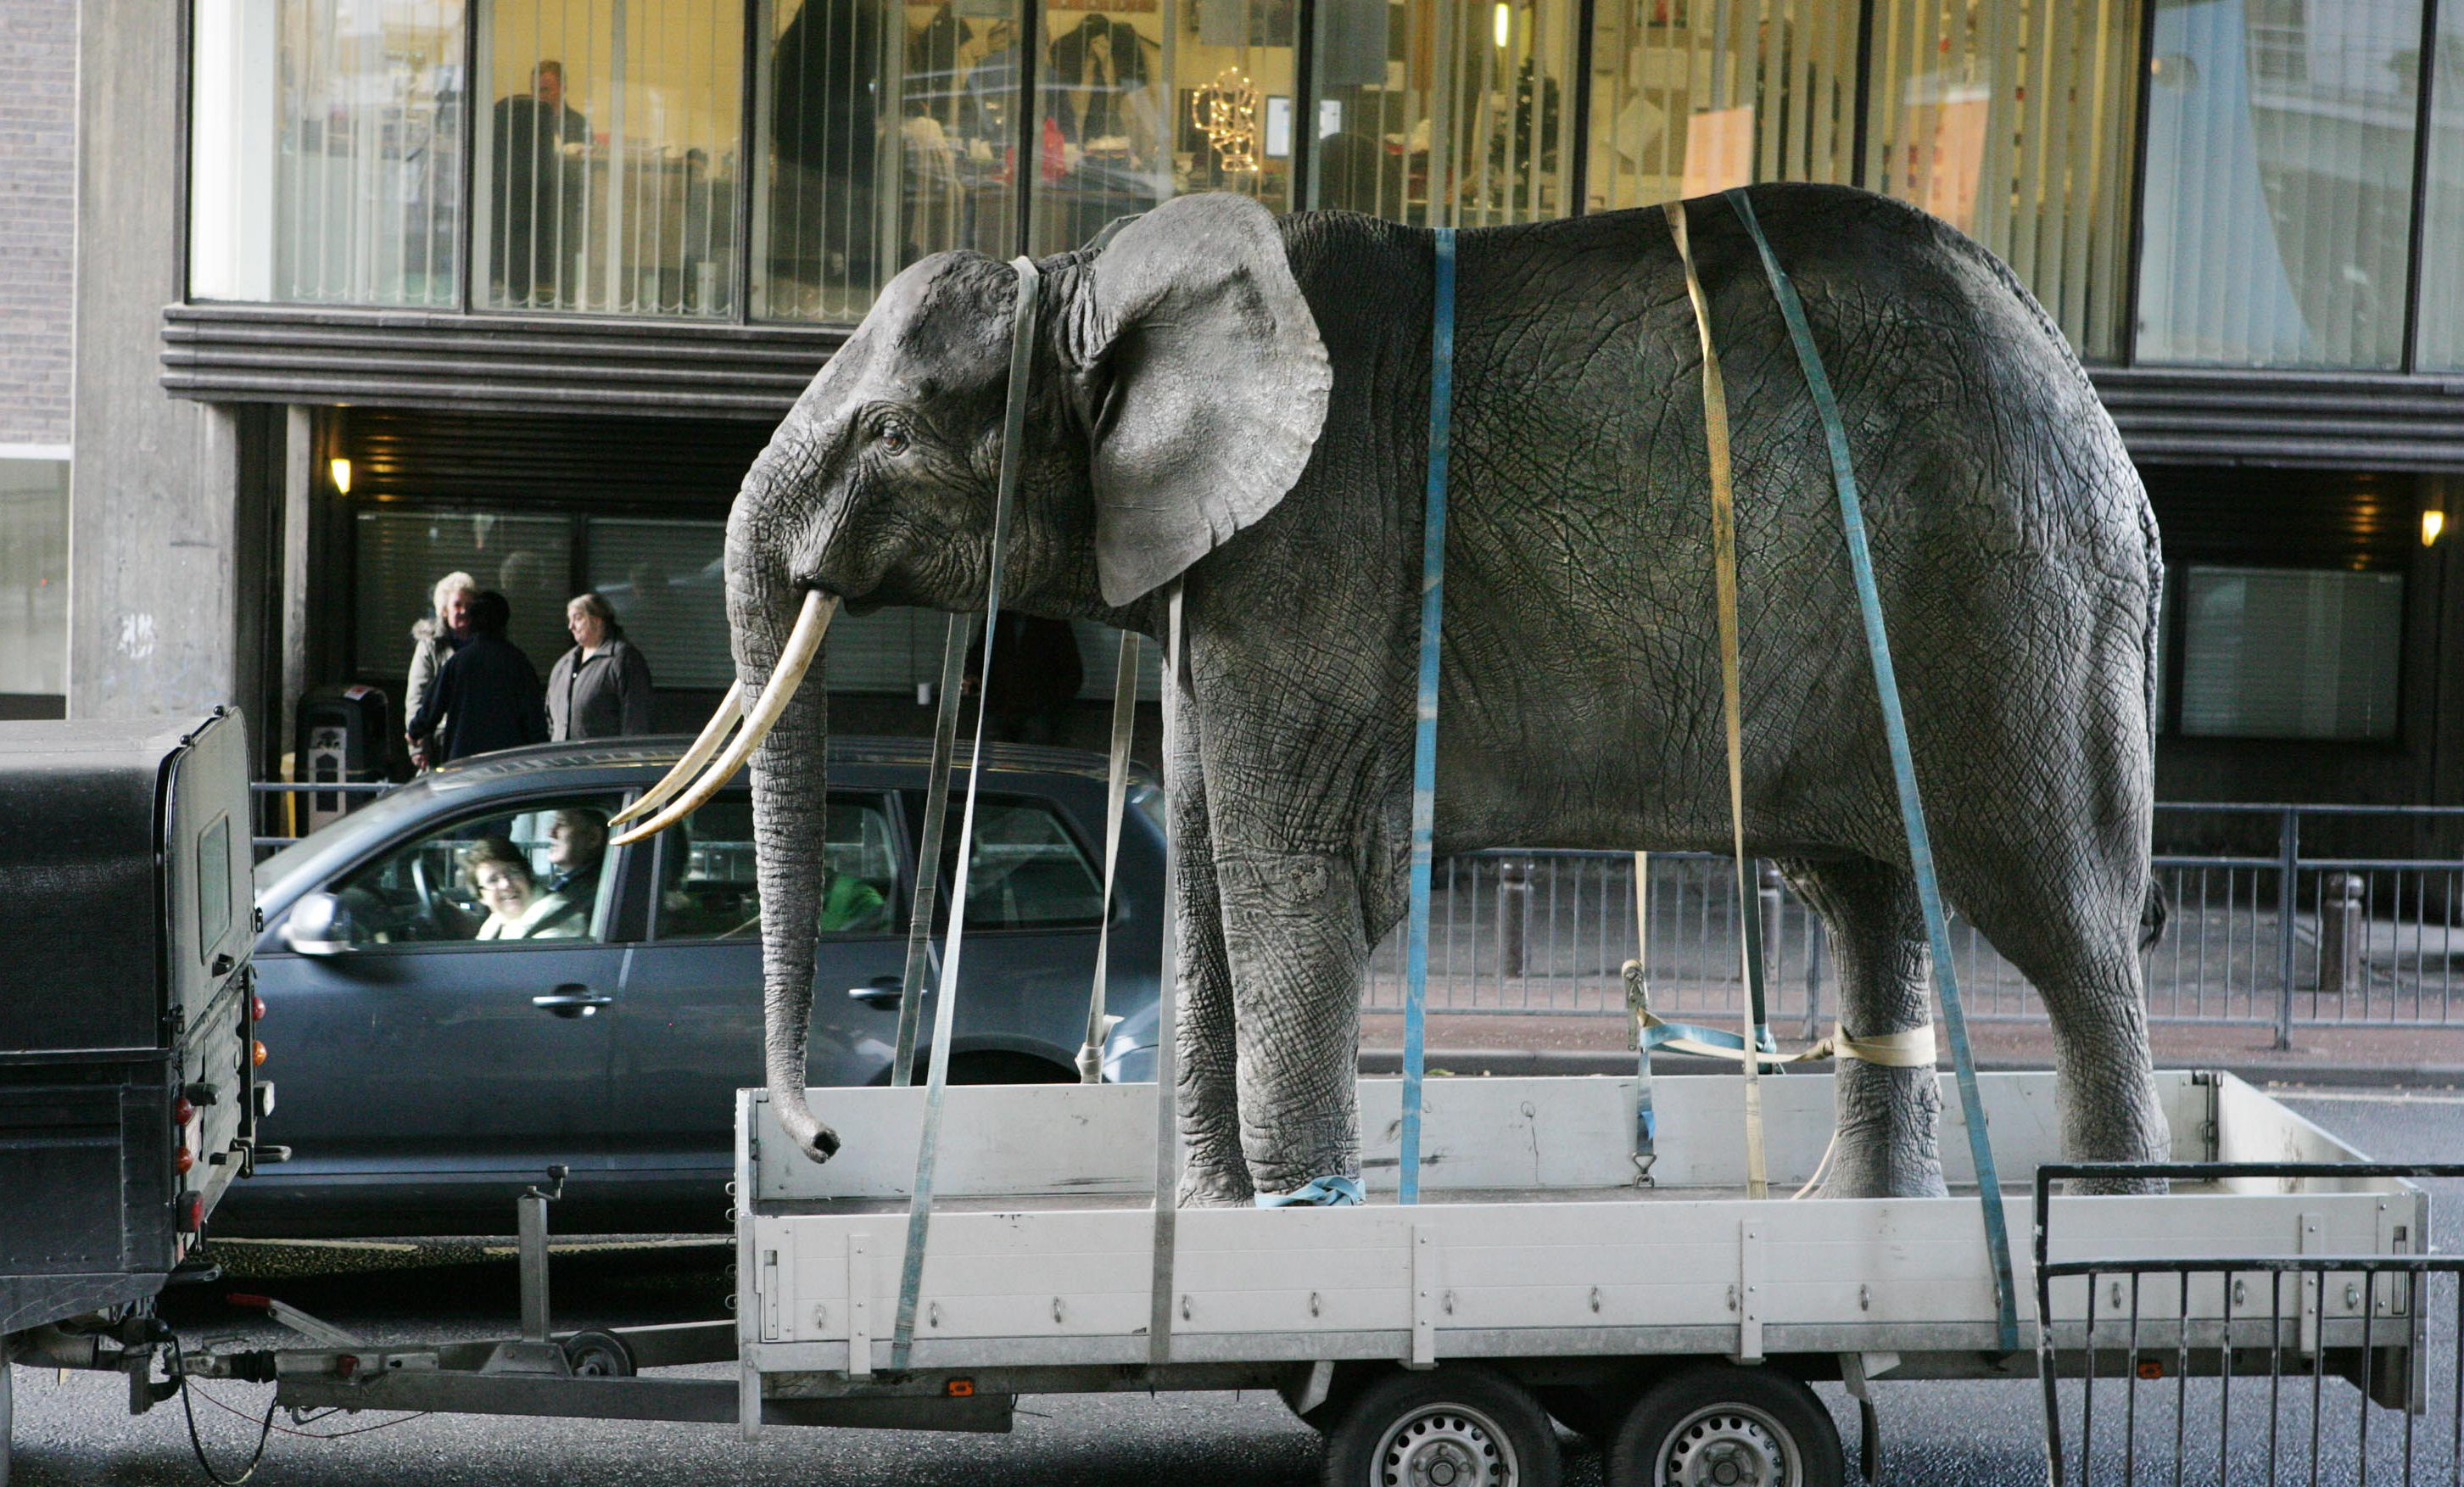 The life size elephant arriving at the new museum